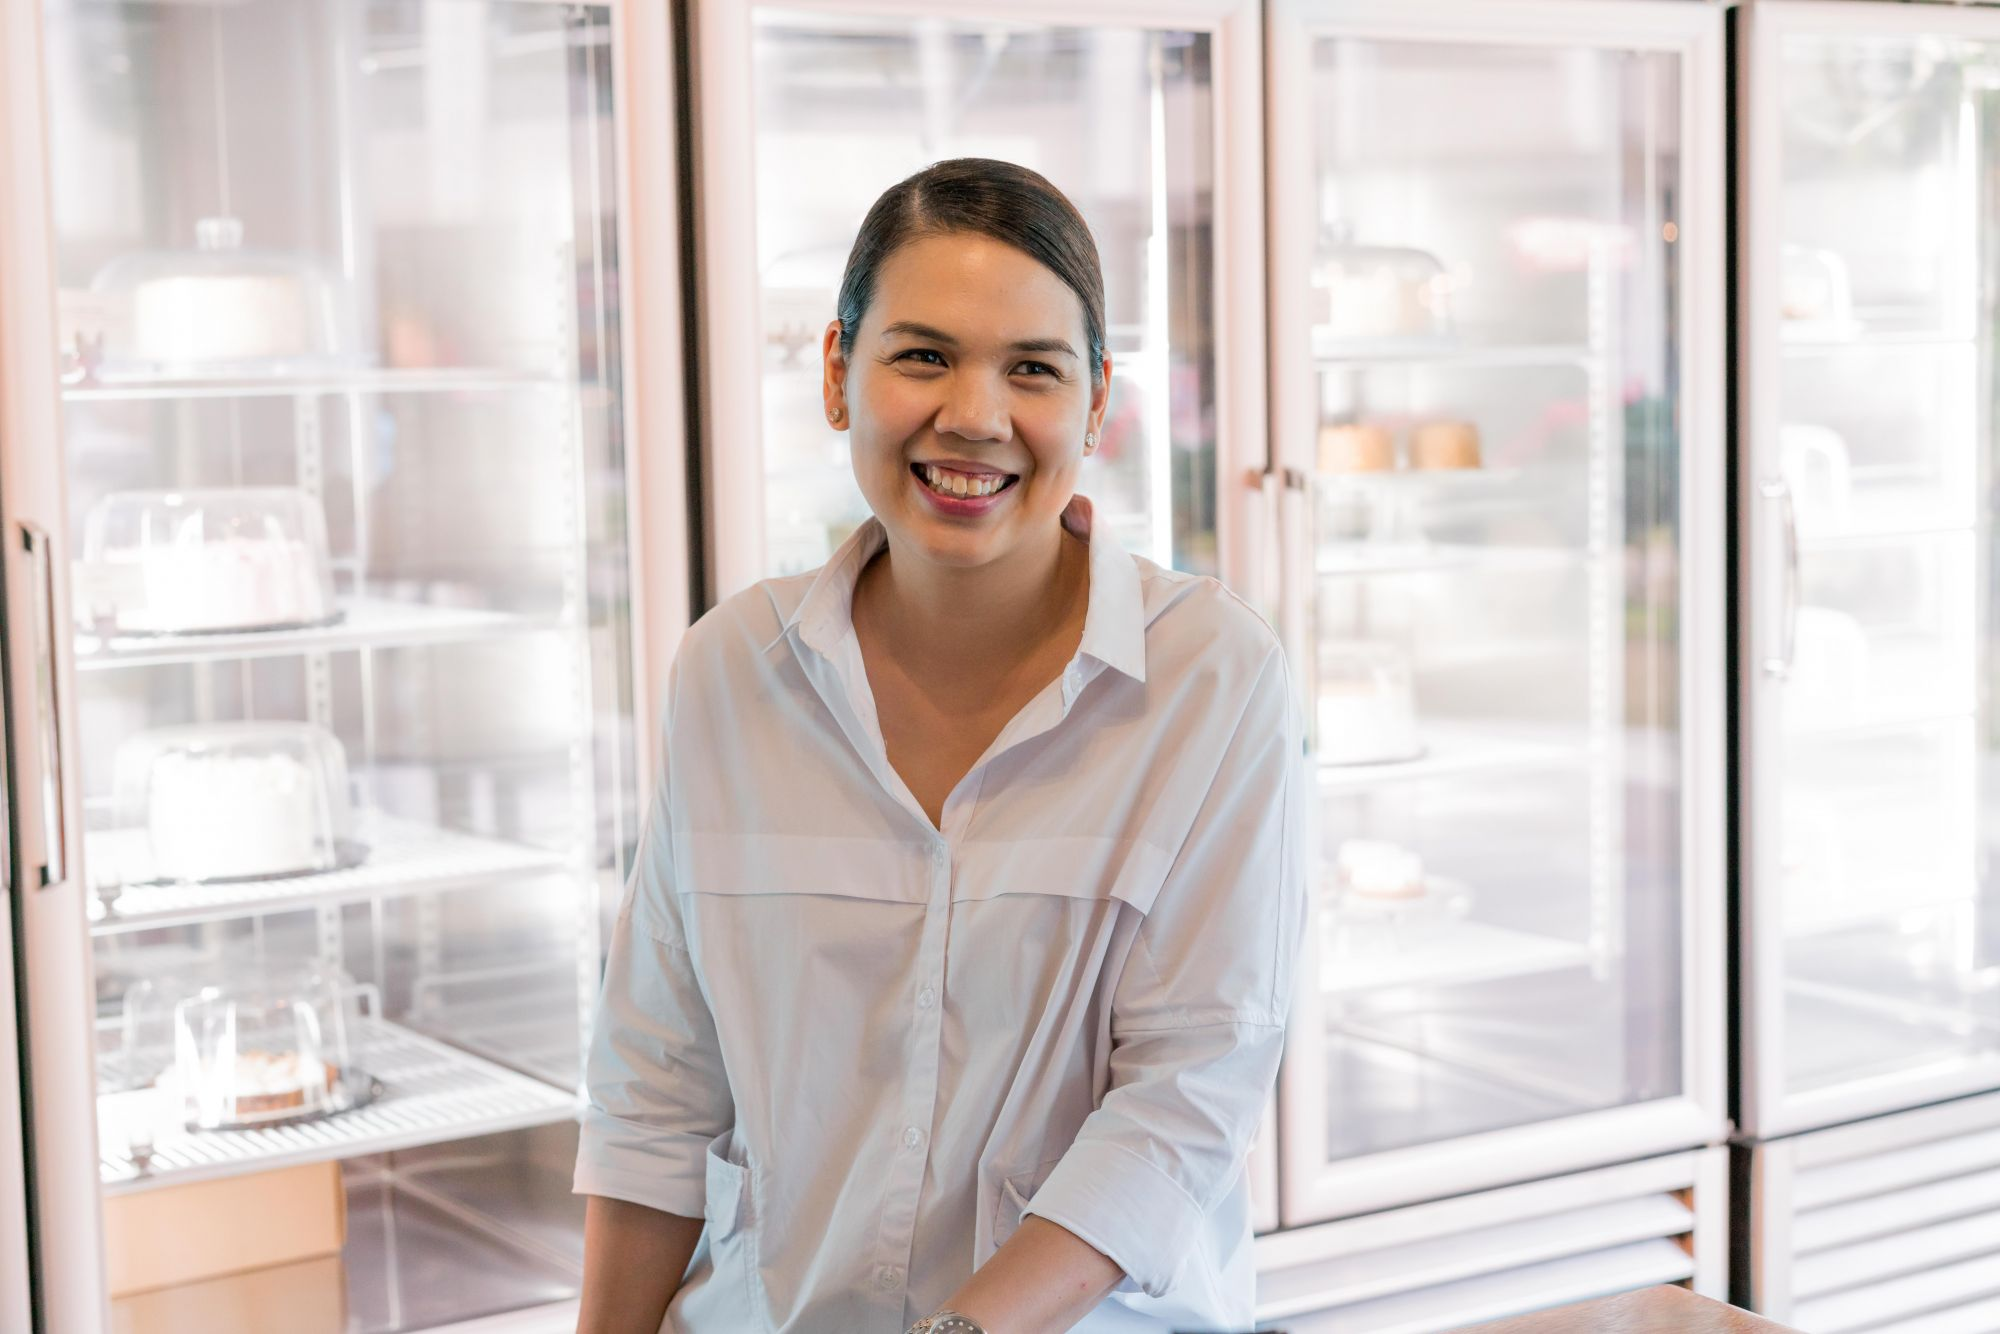 Chef and restauranteur Baba Ibazeta-Benedicto, the talented woman behind Classic Confections and Nono's